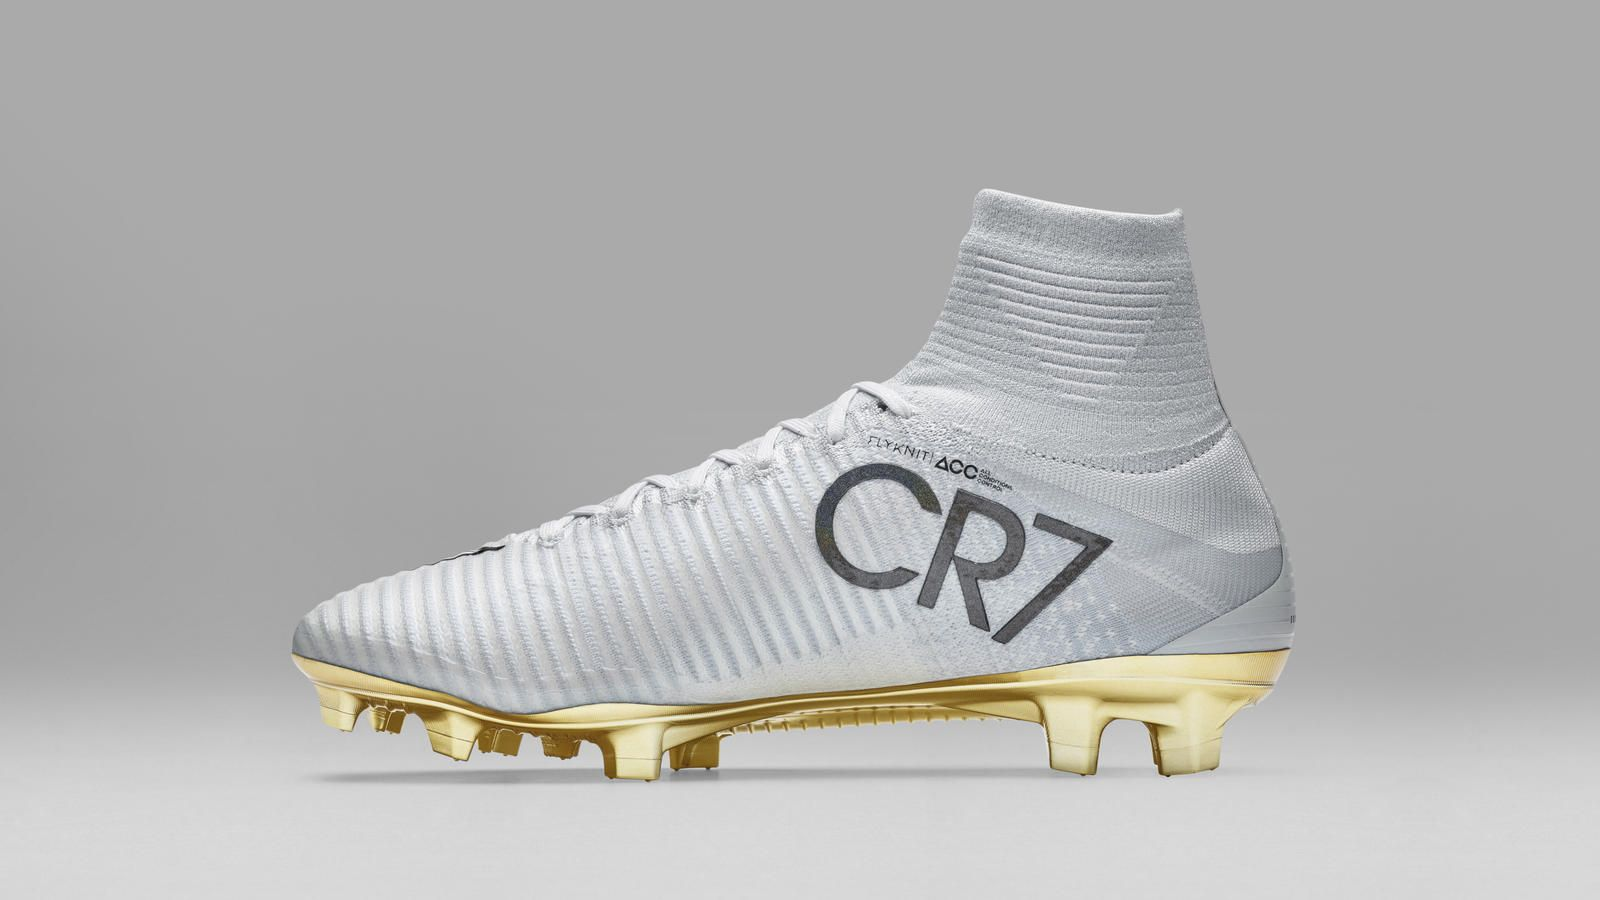 Nike News - Nike Pays Tribute to Cristiano Ronaldo s Tremendous Year With  Limited-Edition Mercurial Superfly CR7 Vitórias 01ada37cfbbb7